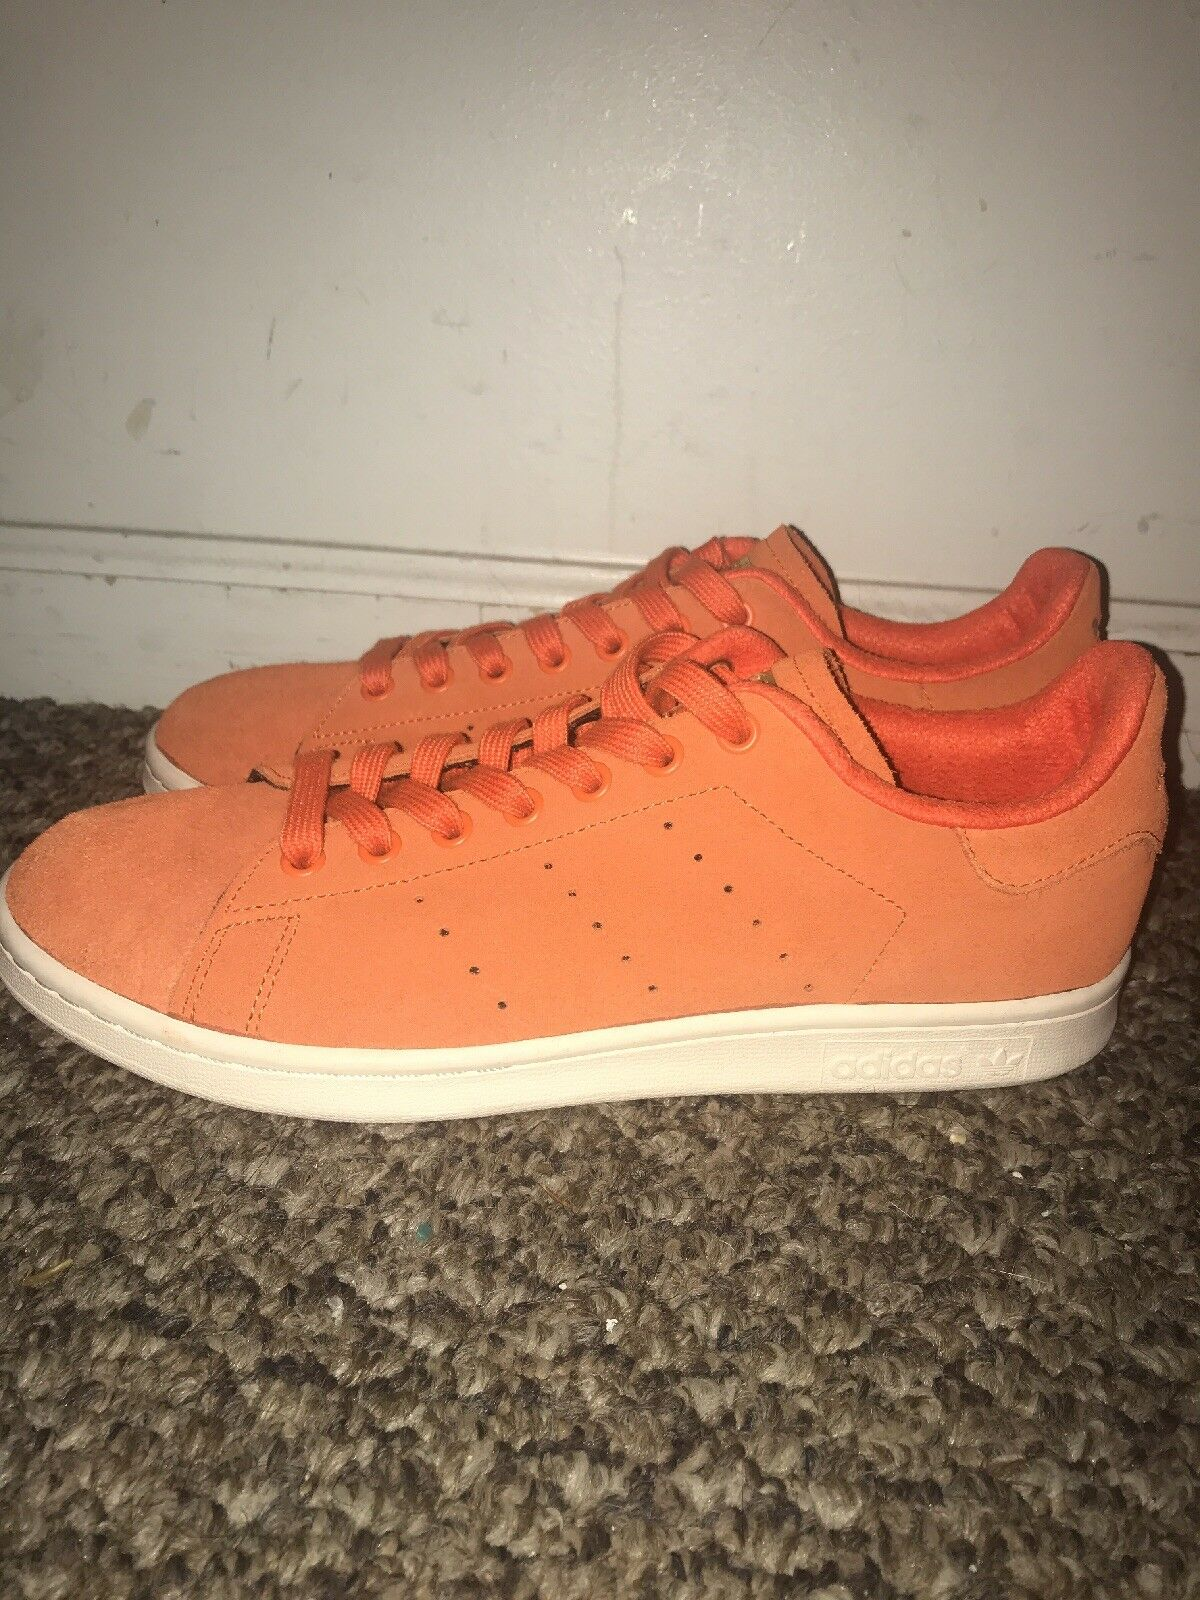 Adidas Stan Smith Size 9 orange Suede